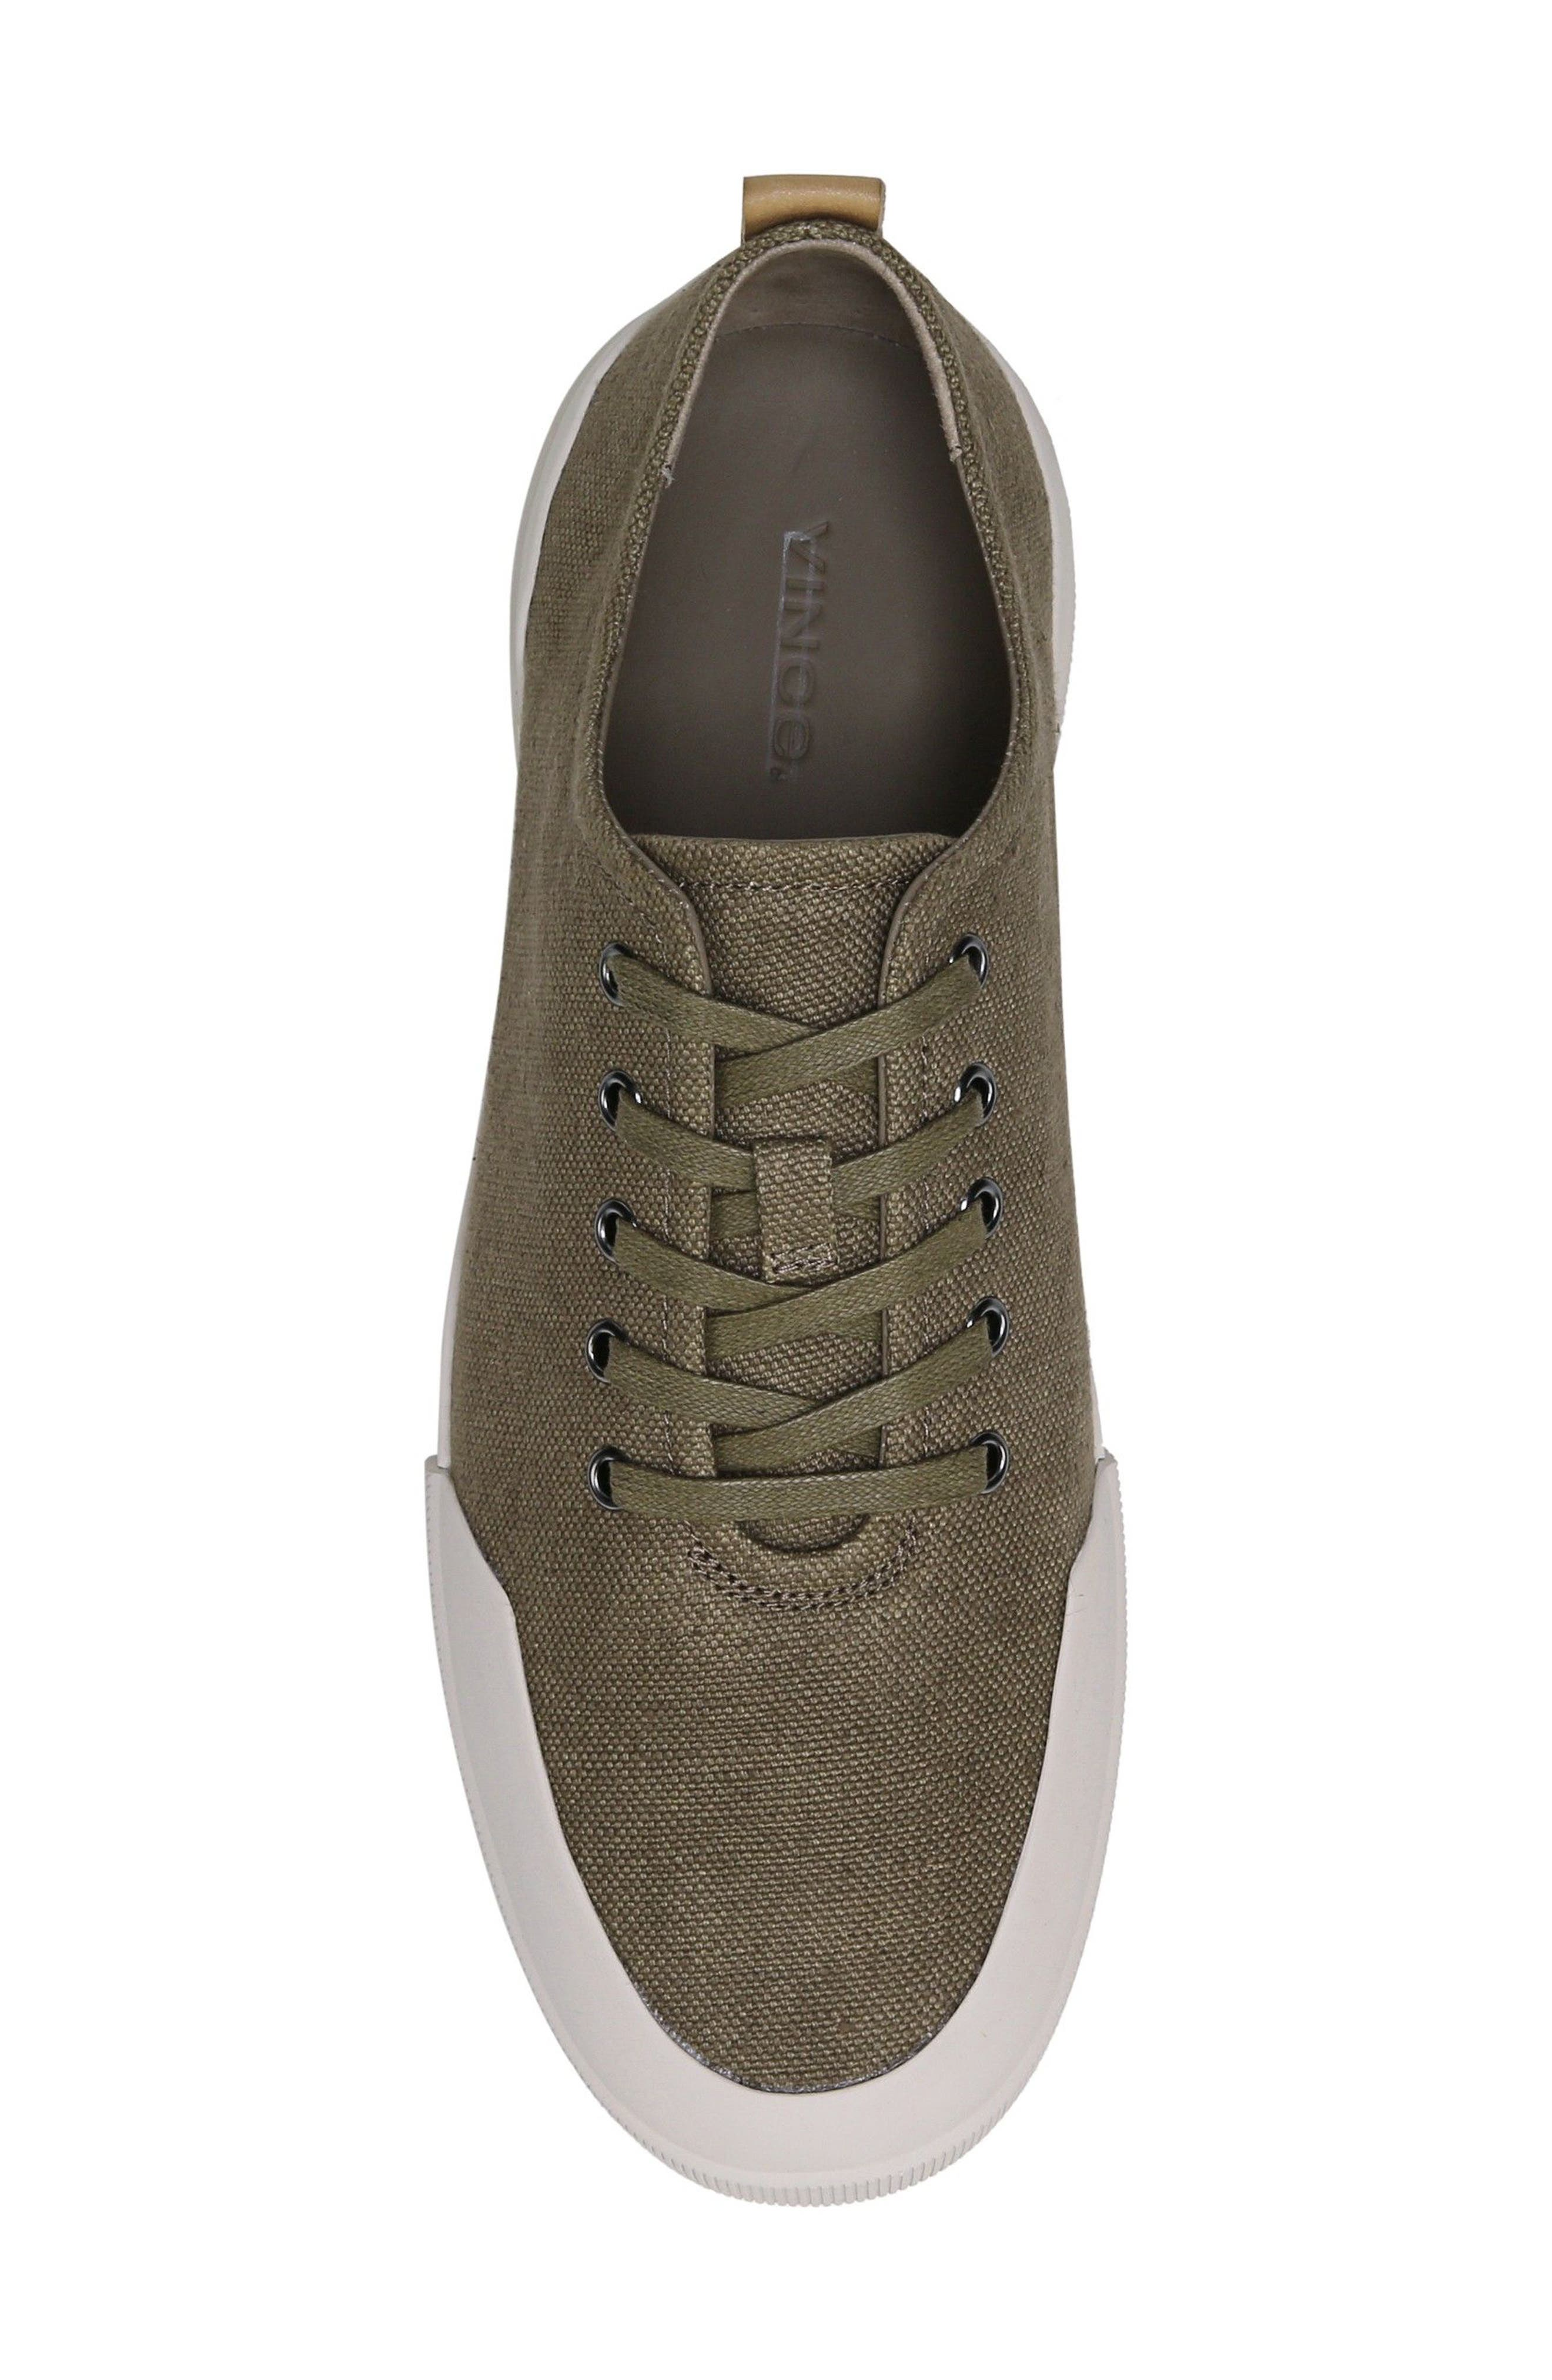 Victor Low Top Sneaker,                             Alternate thumbnail 5, color,                             Flint/ Cuoio